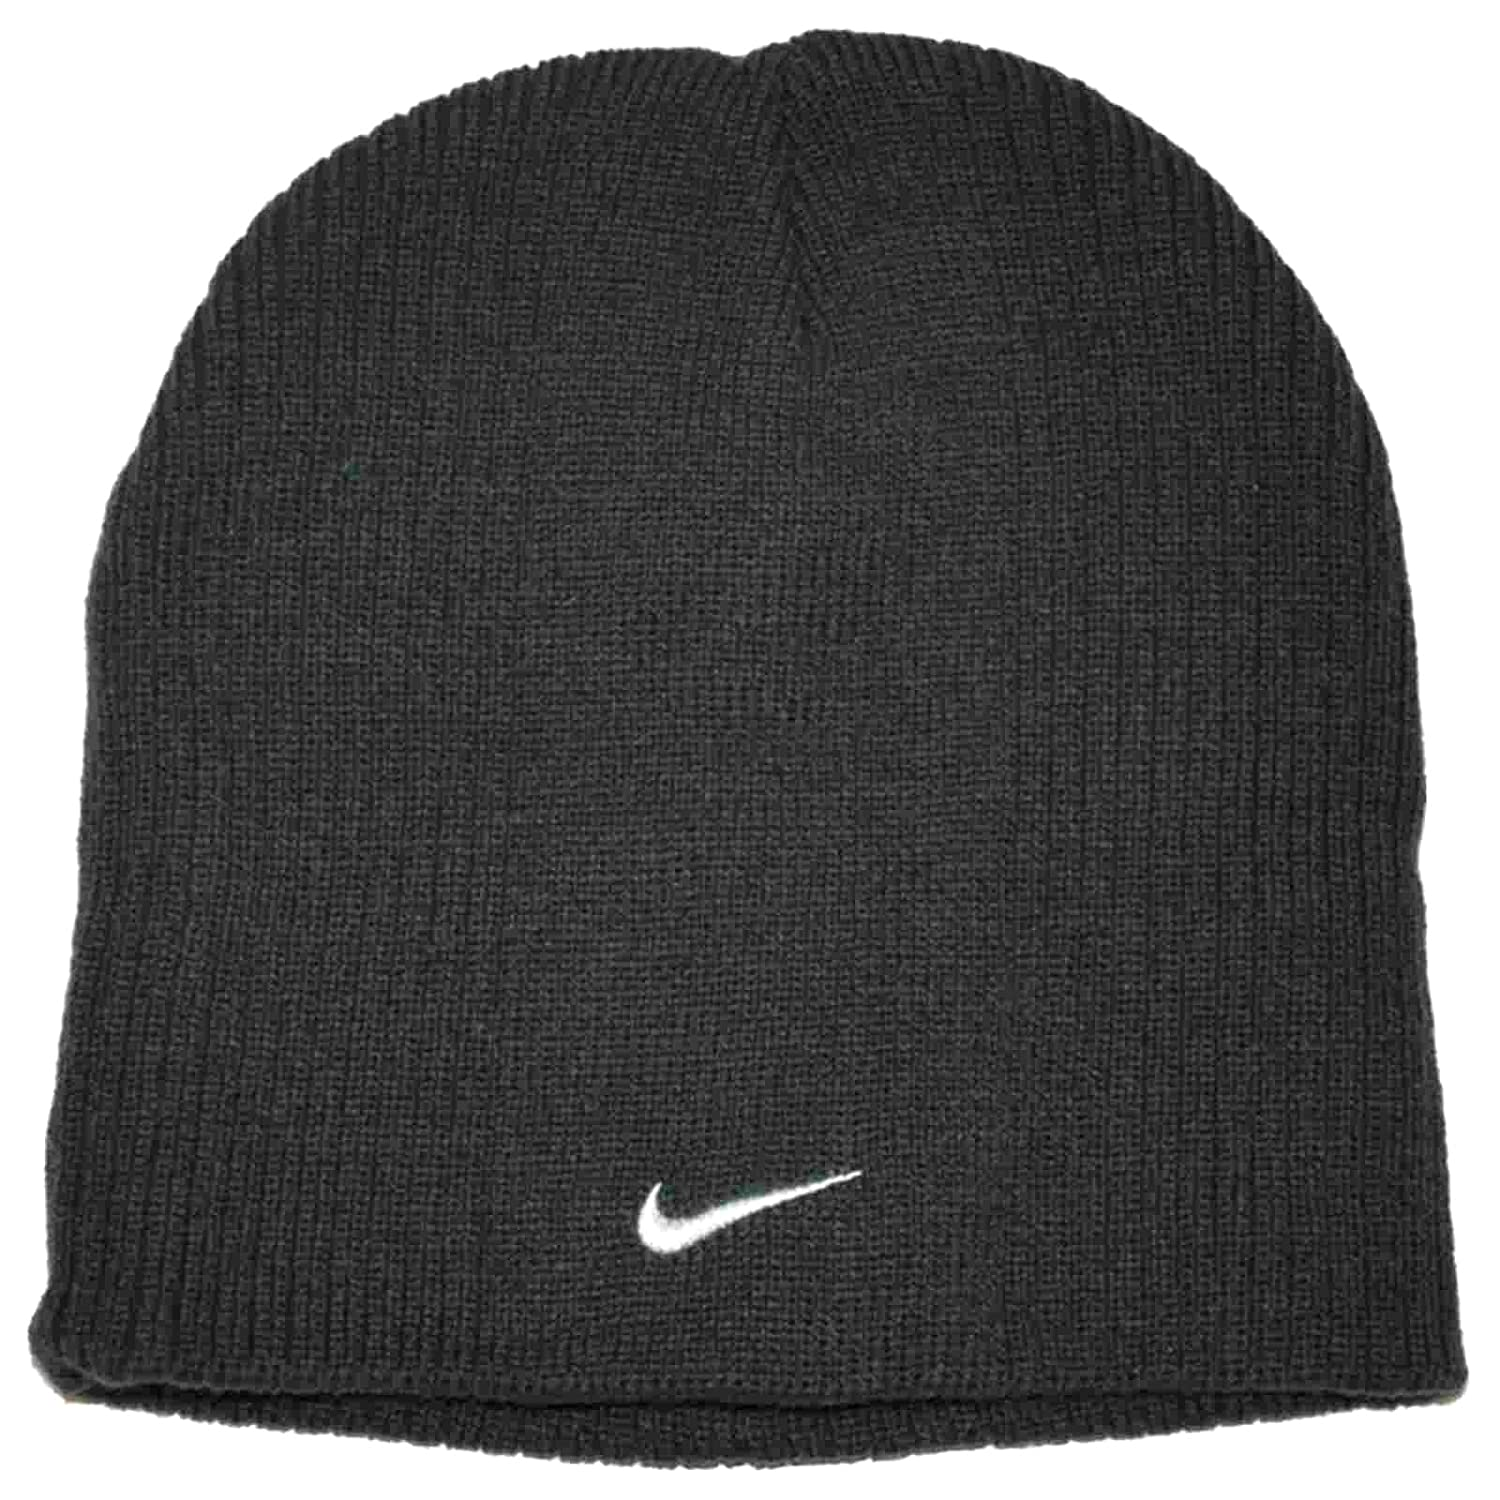 5e5112862d3 Amazon.com  Nike Small Check Youth Boys 8 20 Ribbed Beanie Hat  (Anthracite)  Sports   Outdoors